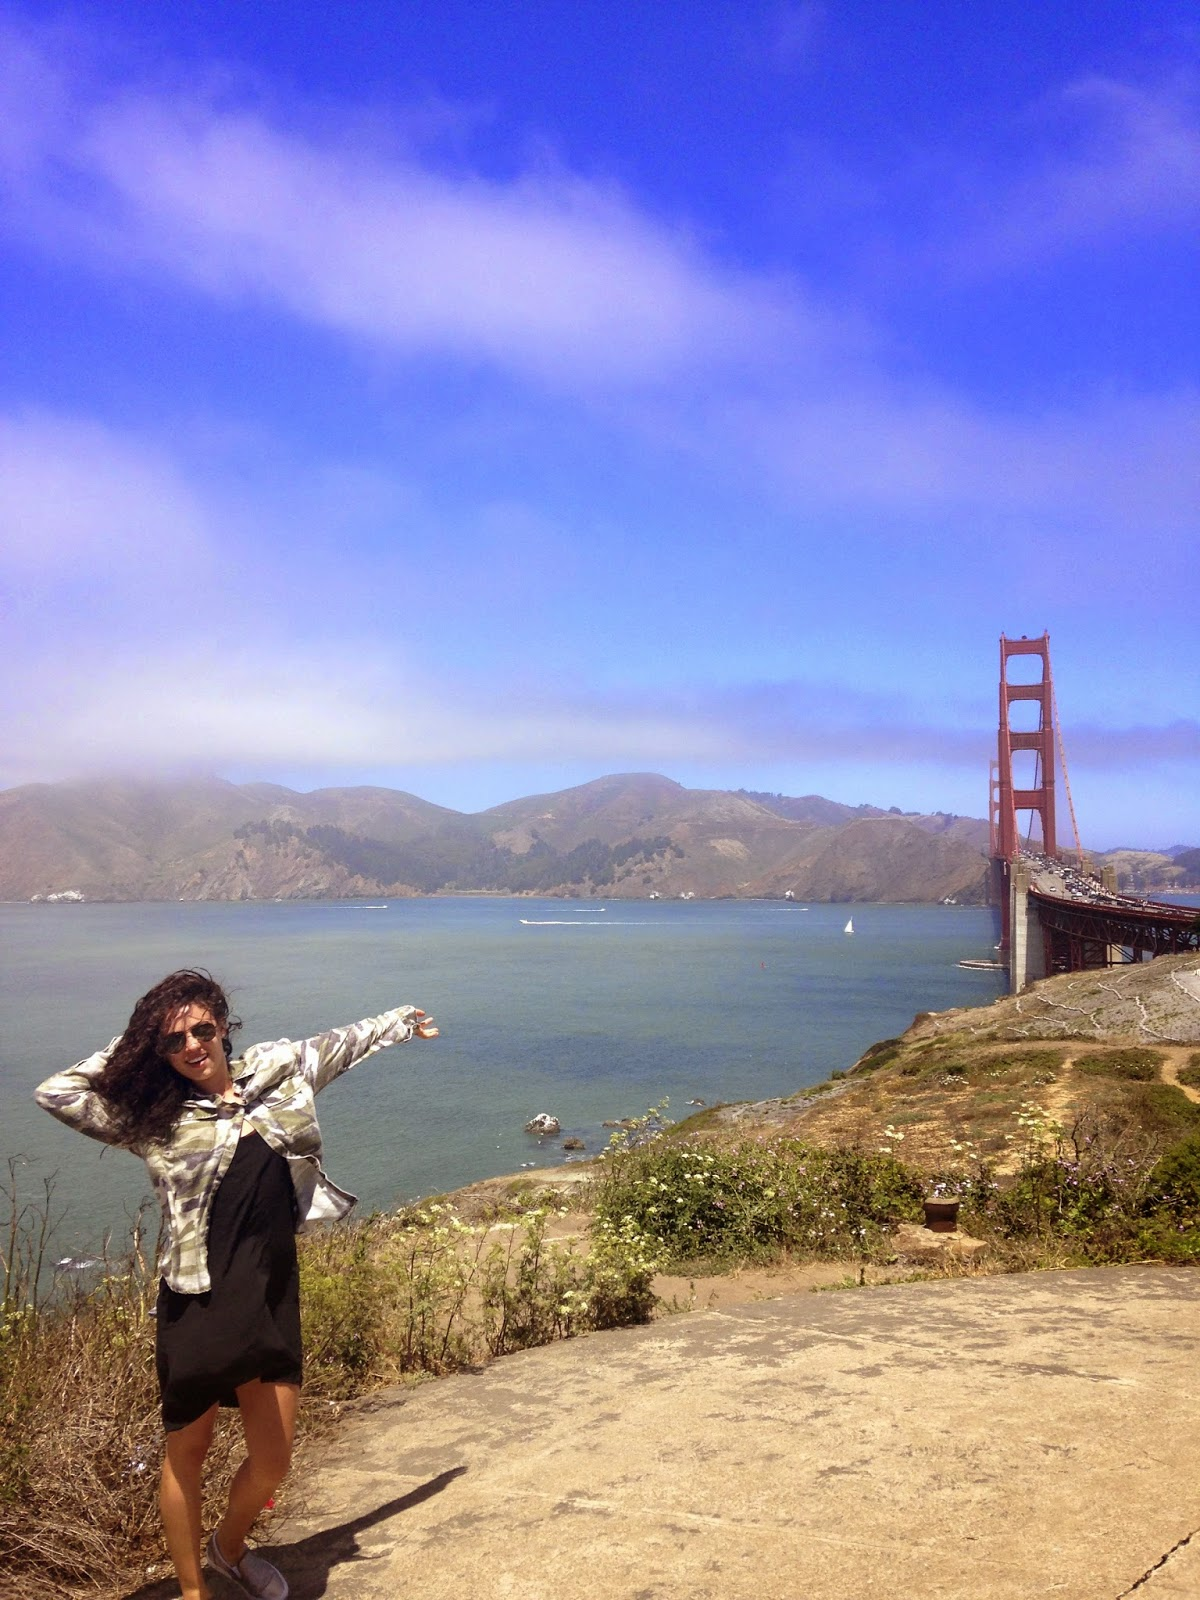 San Francisco golden gate bridge travel blog pacific coast highway cali dream California vaca camo ootd big hair summer